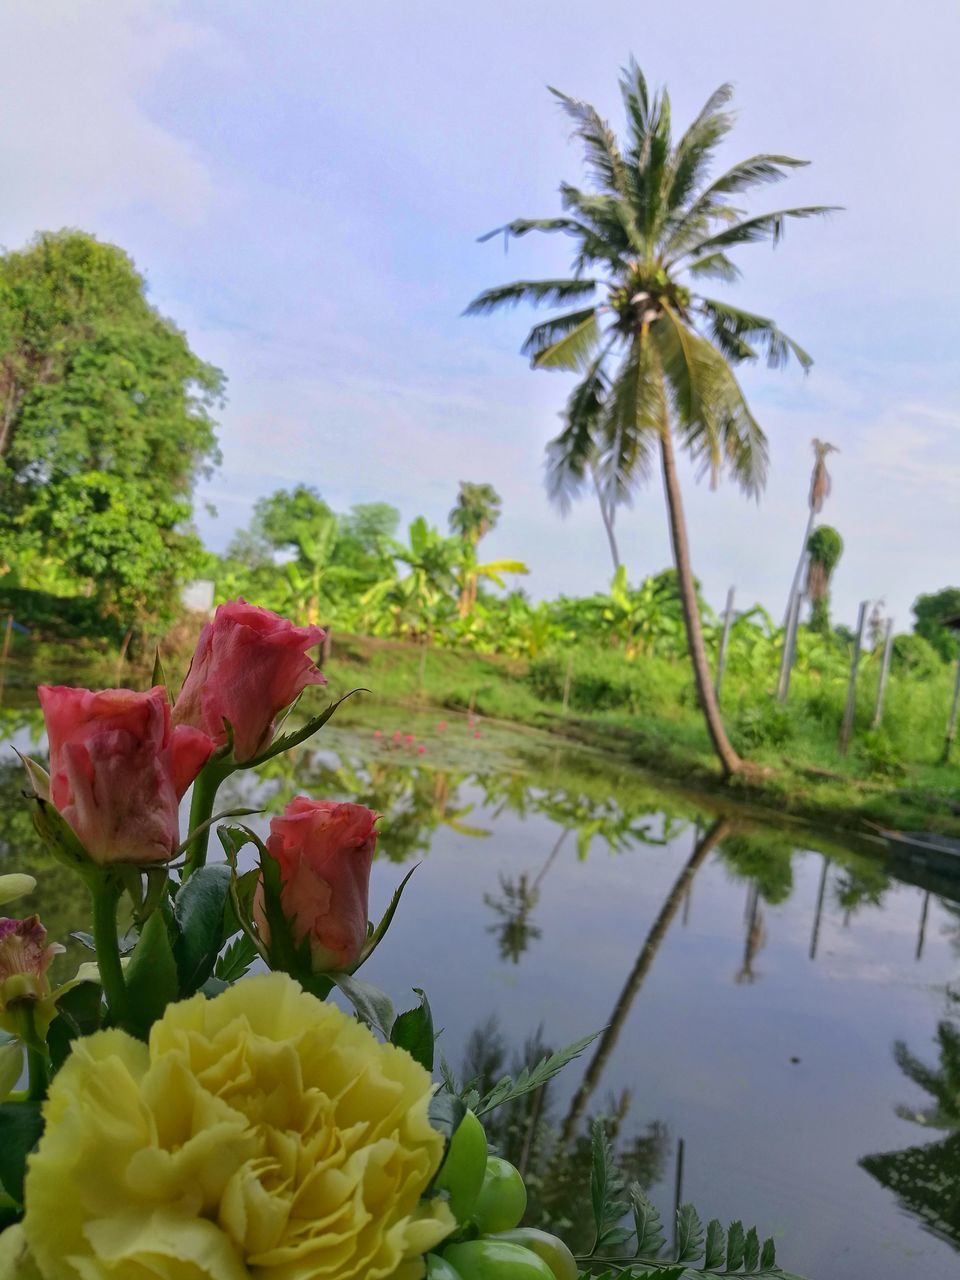 flower, beauty in nature, nature, petal, fragility, no people, growth, freshness, flower head, palm tree, tranquility, plant, outdoors, water, day, sky, tree, close-up